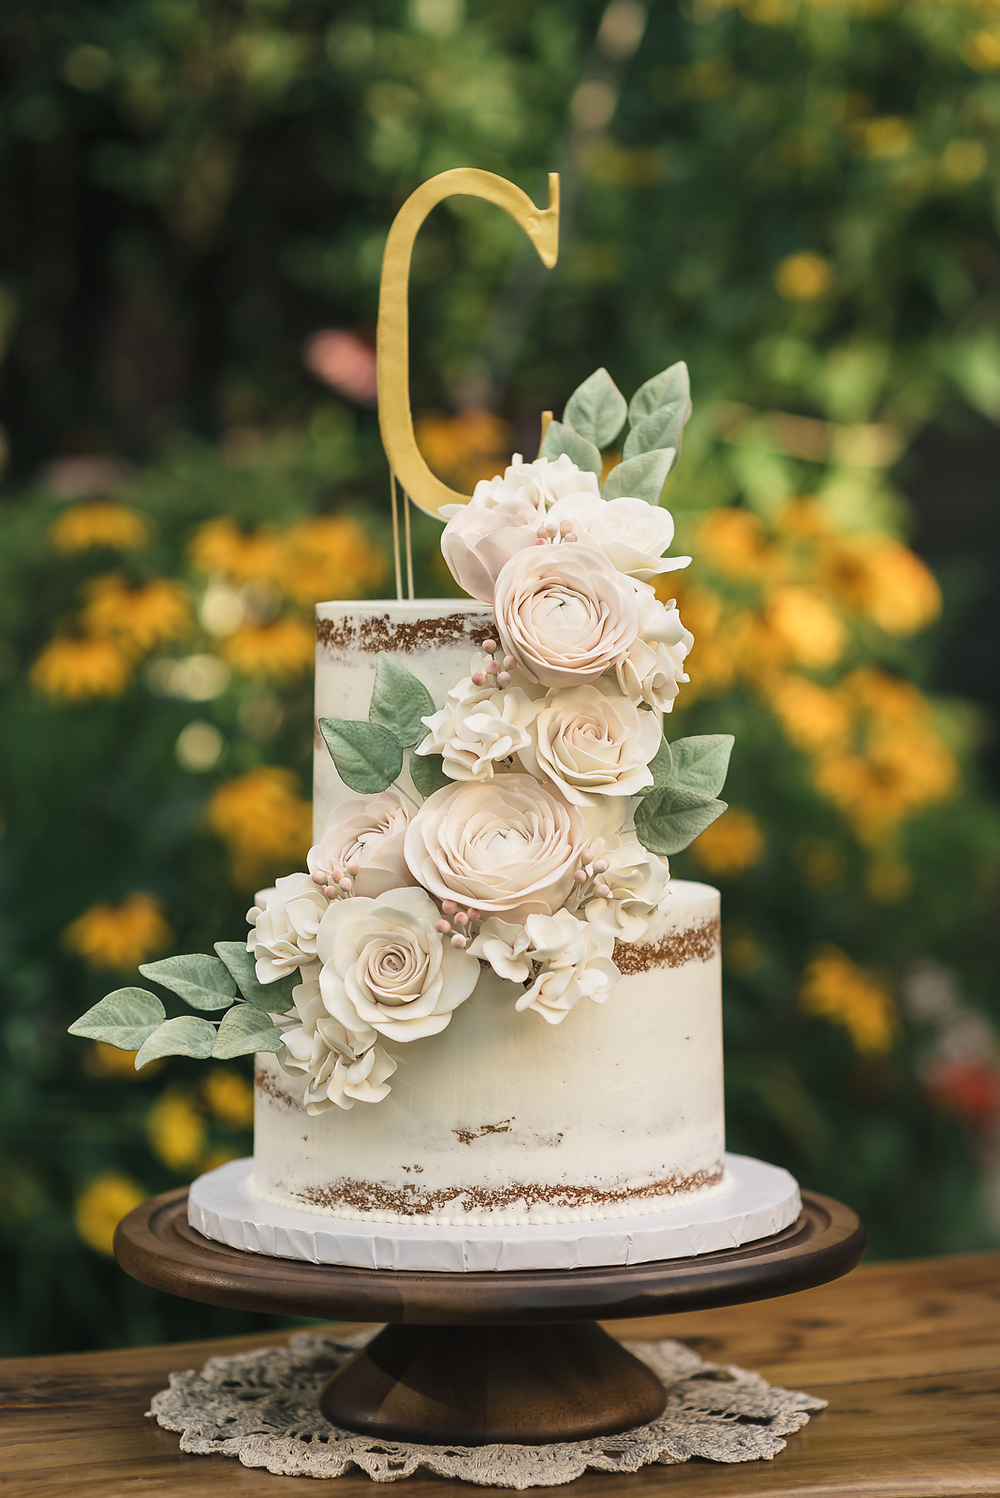 Upstate Naked Wedding Cake - Sugar Lane Cake Shop